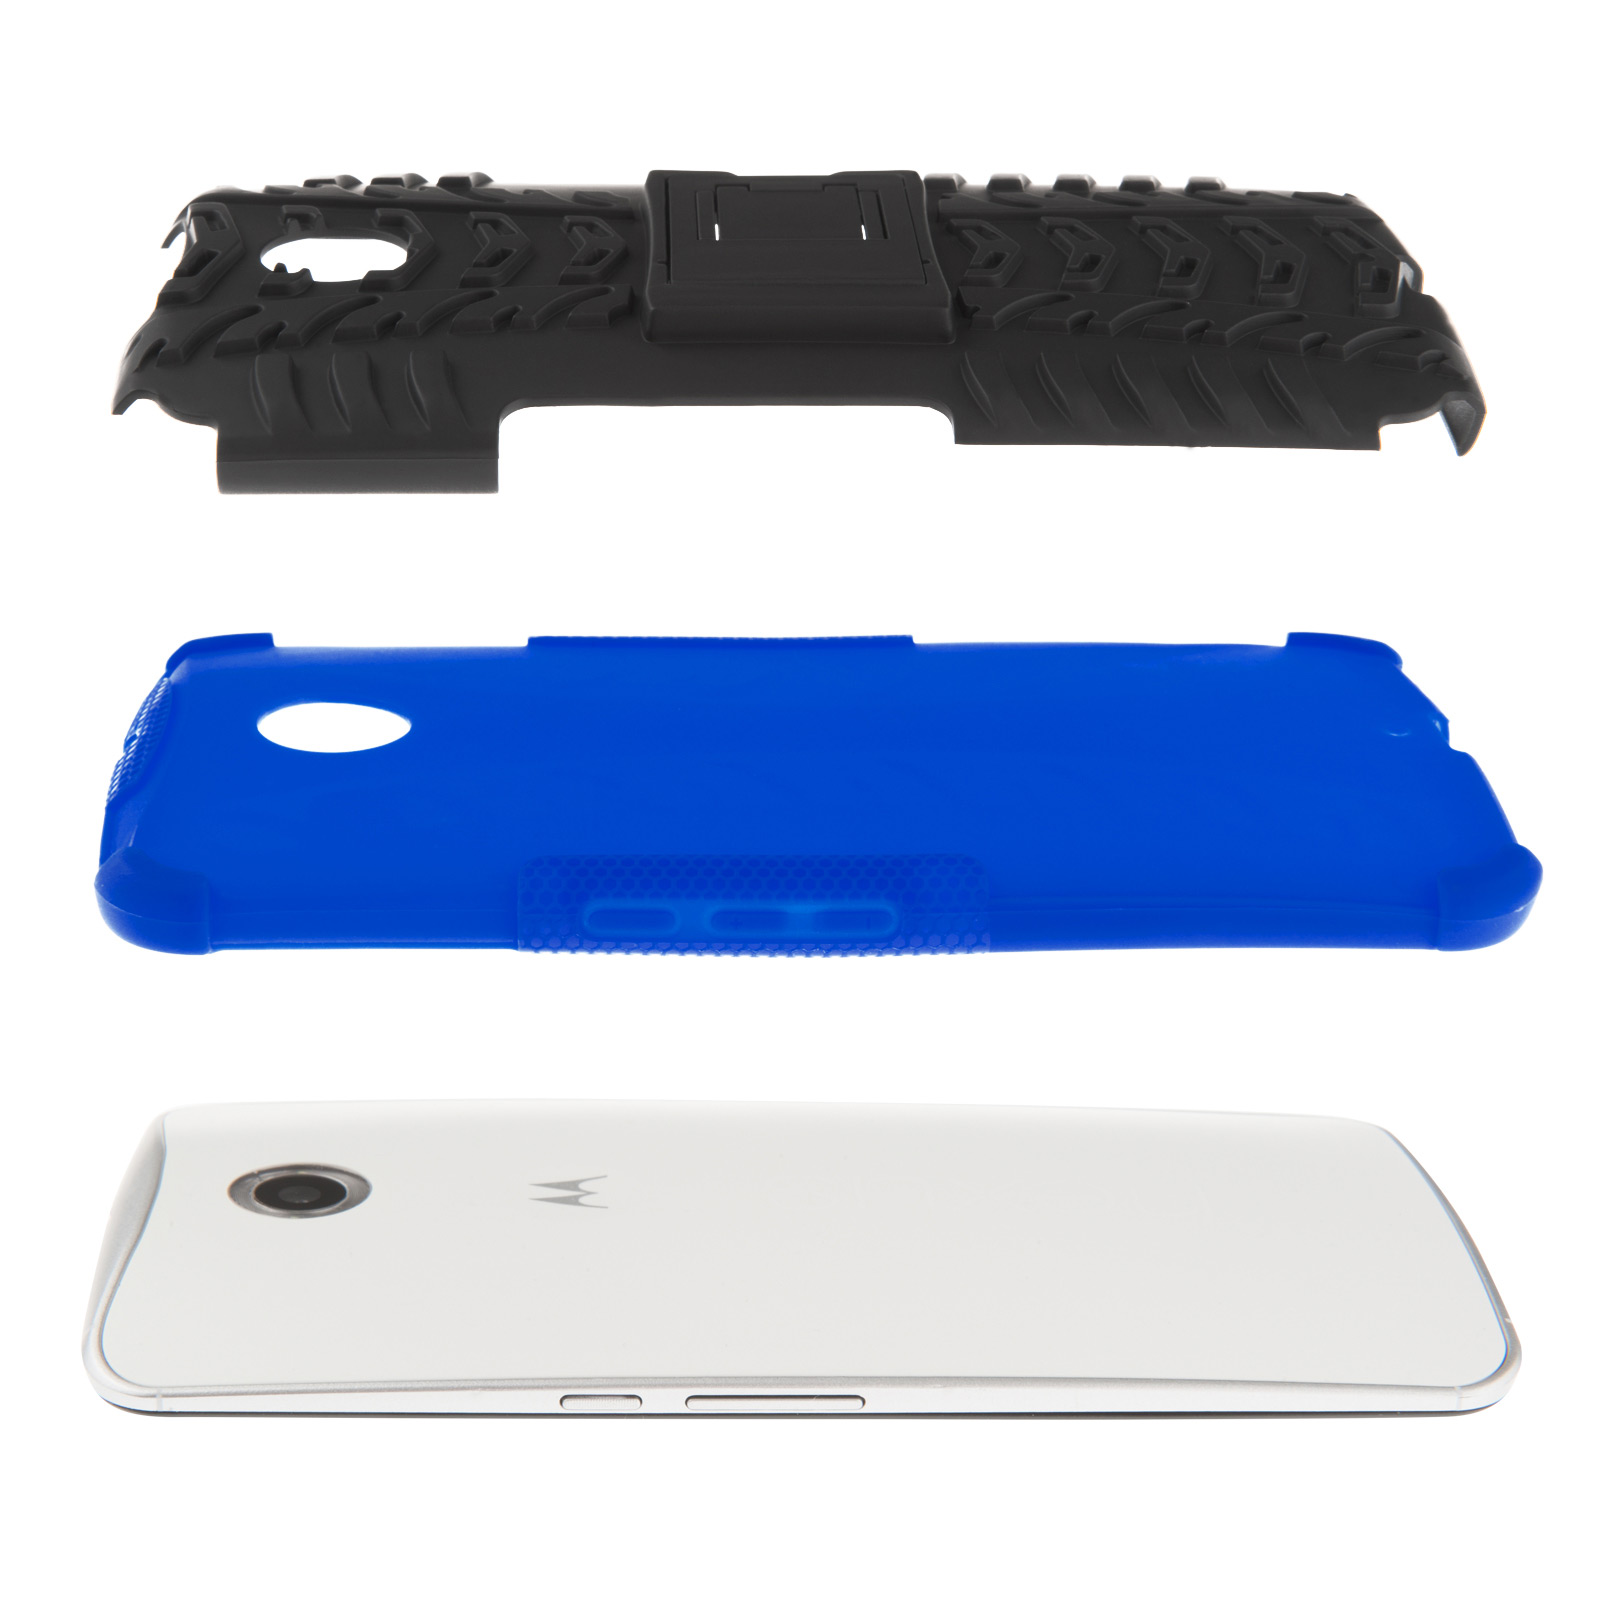 YouSave Accessories Google Nexus 6 Stand Combo Case - Blue / Black